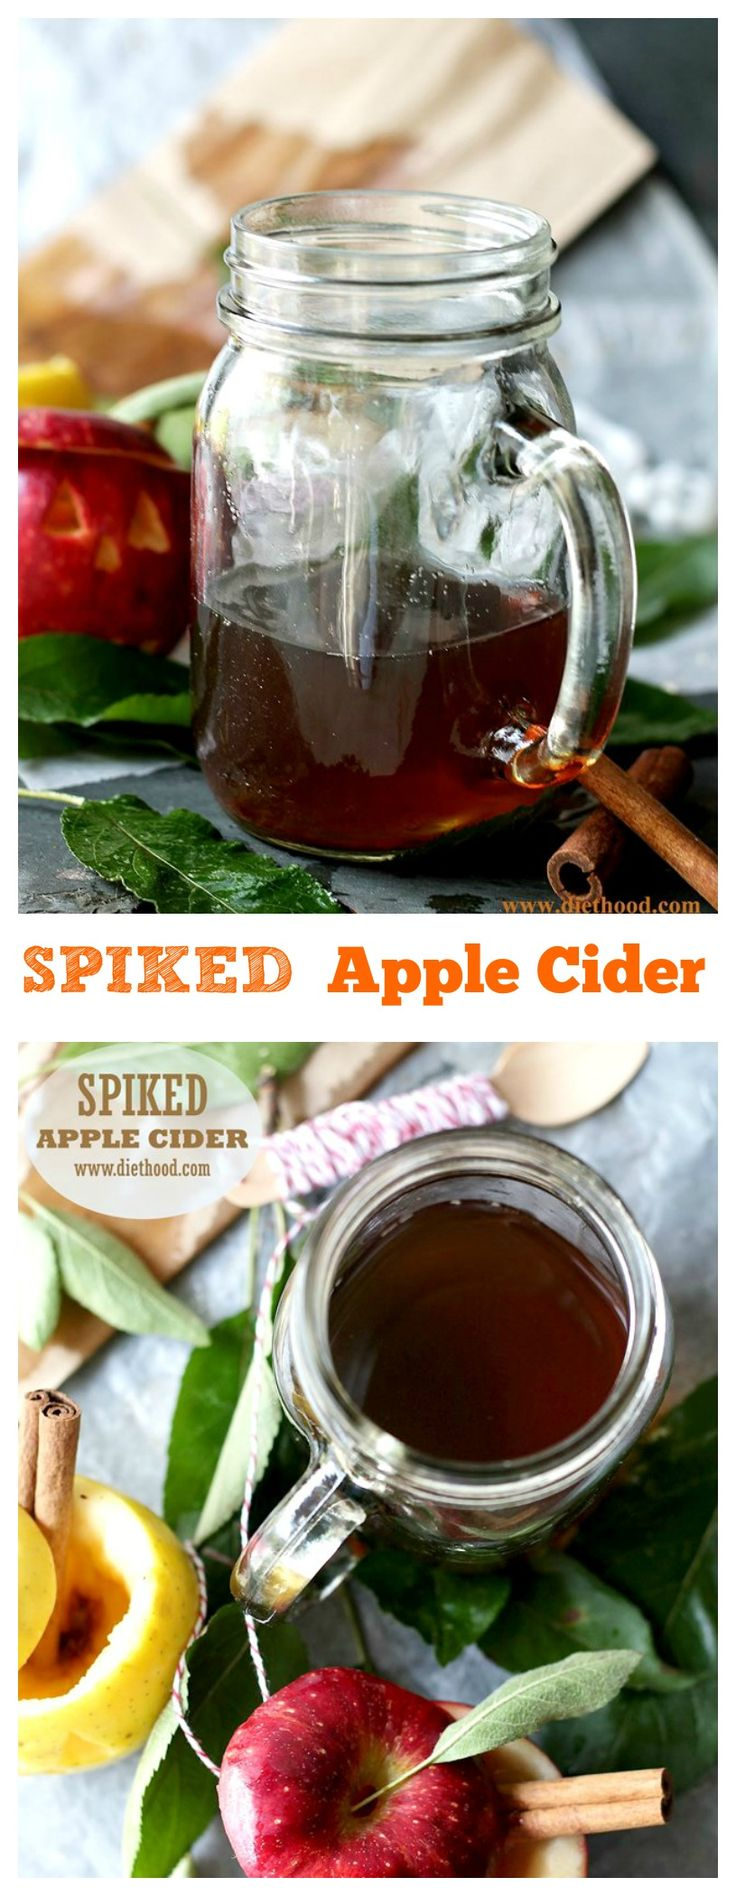 Spiked Apple Cider | www.diethood.com | A delicious, spicy and boozy ...